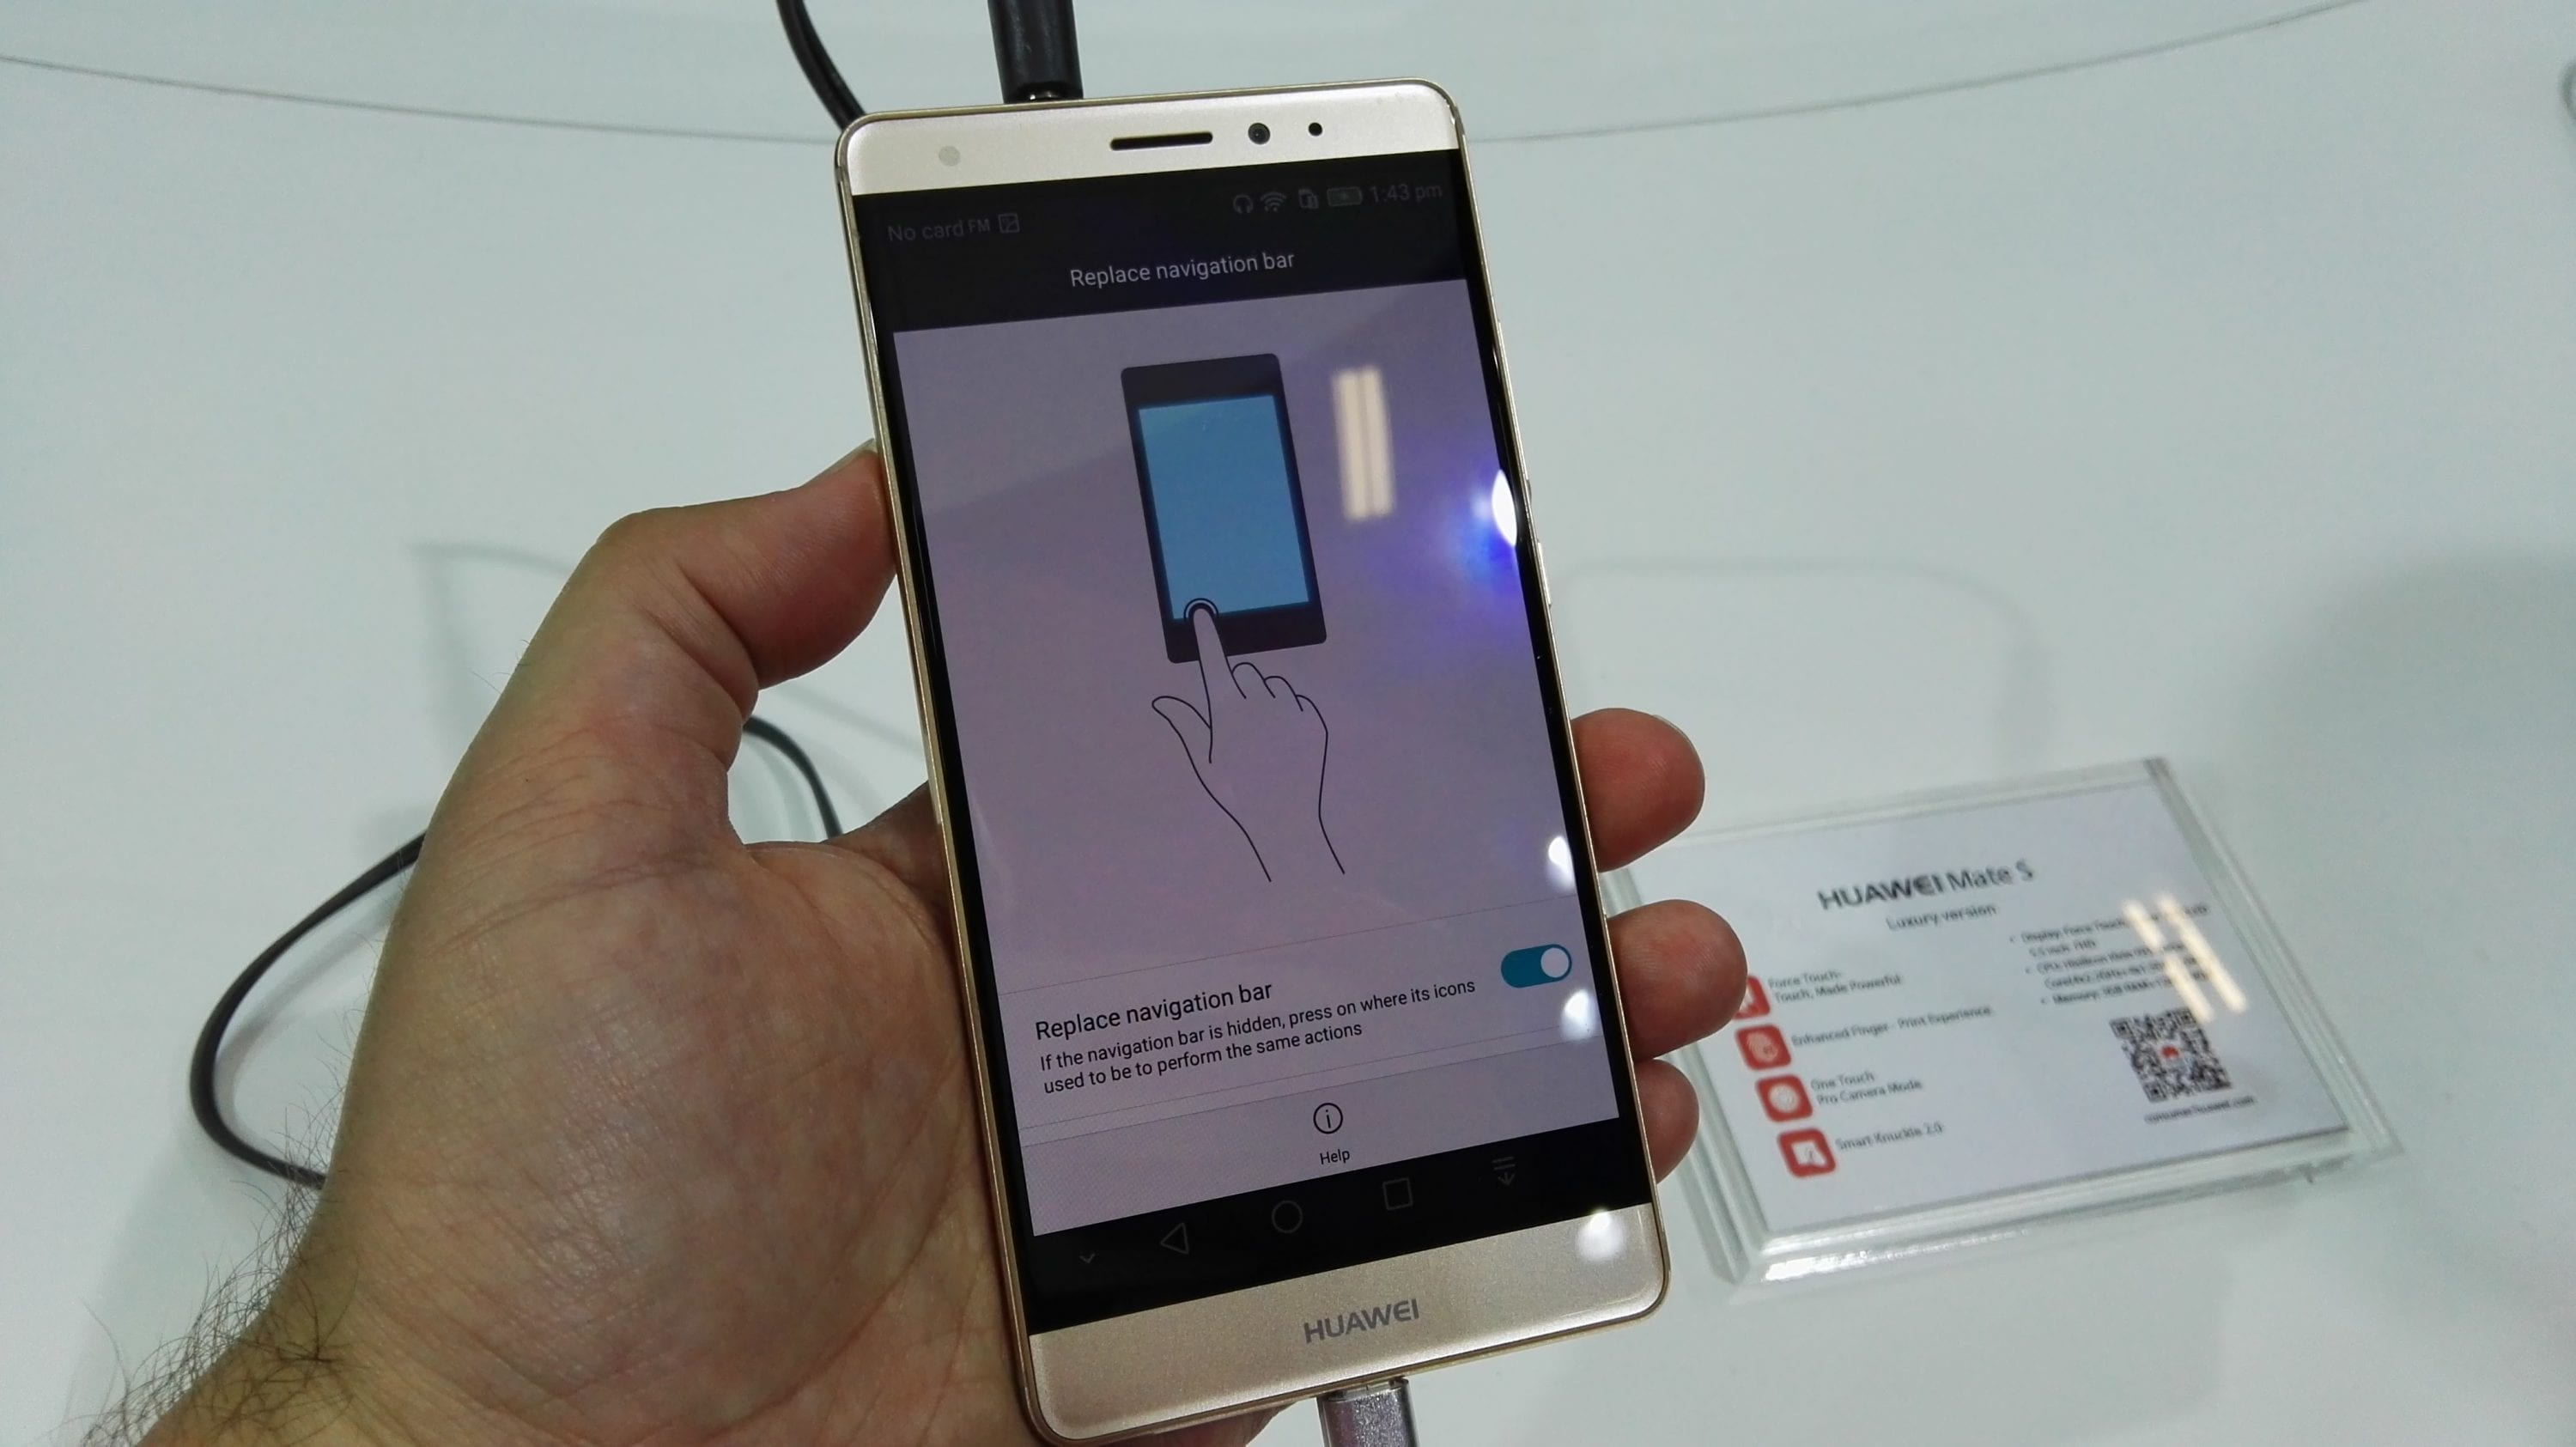 Huawei Mate S Force Touch